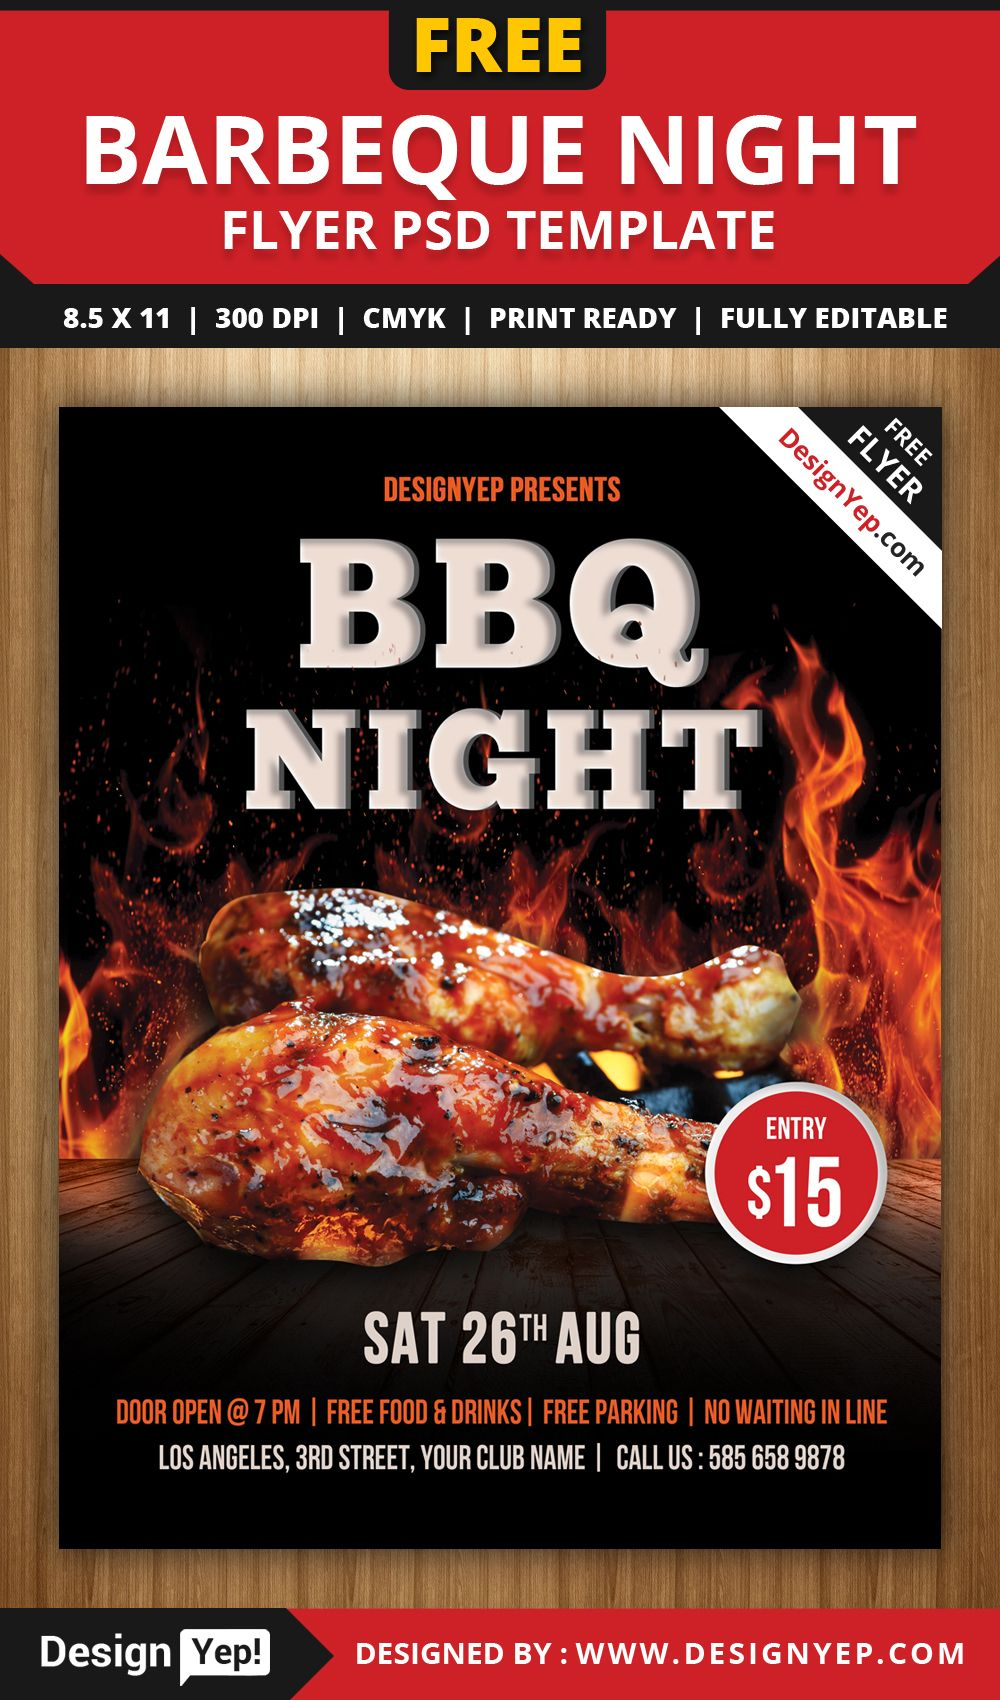 free barbeque night flyer psd template 3456 designyep